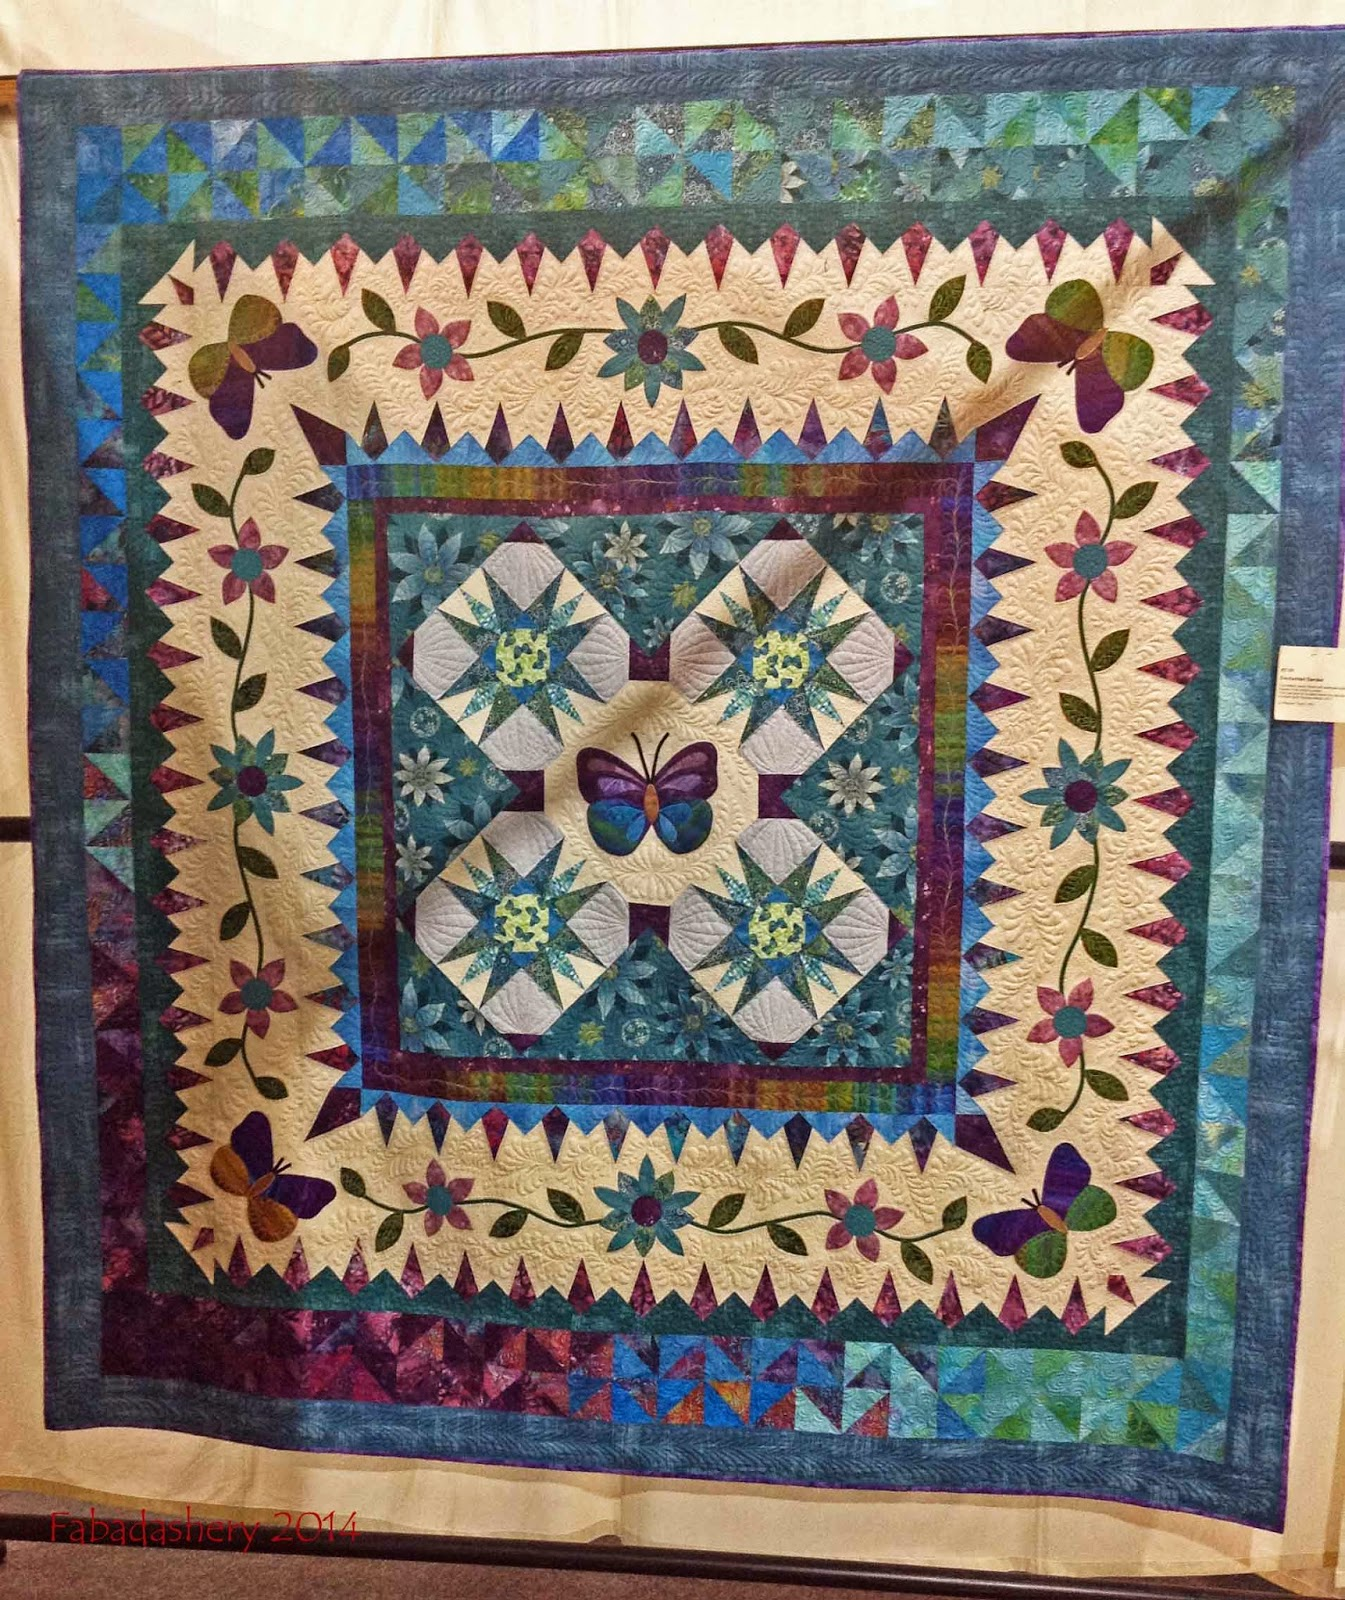 'Enchanted Garden' Quilt by Rhianon Taylor